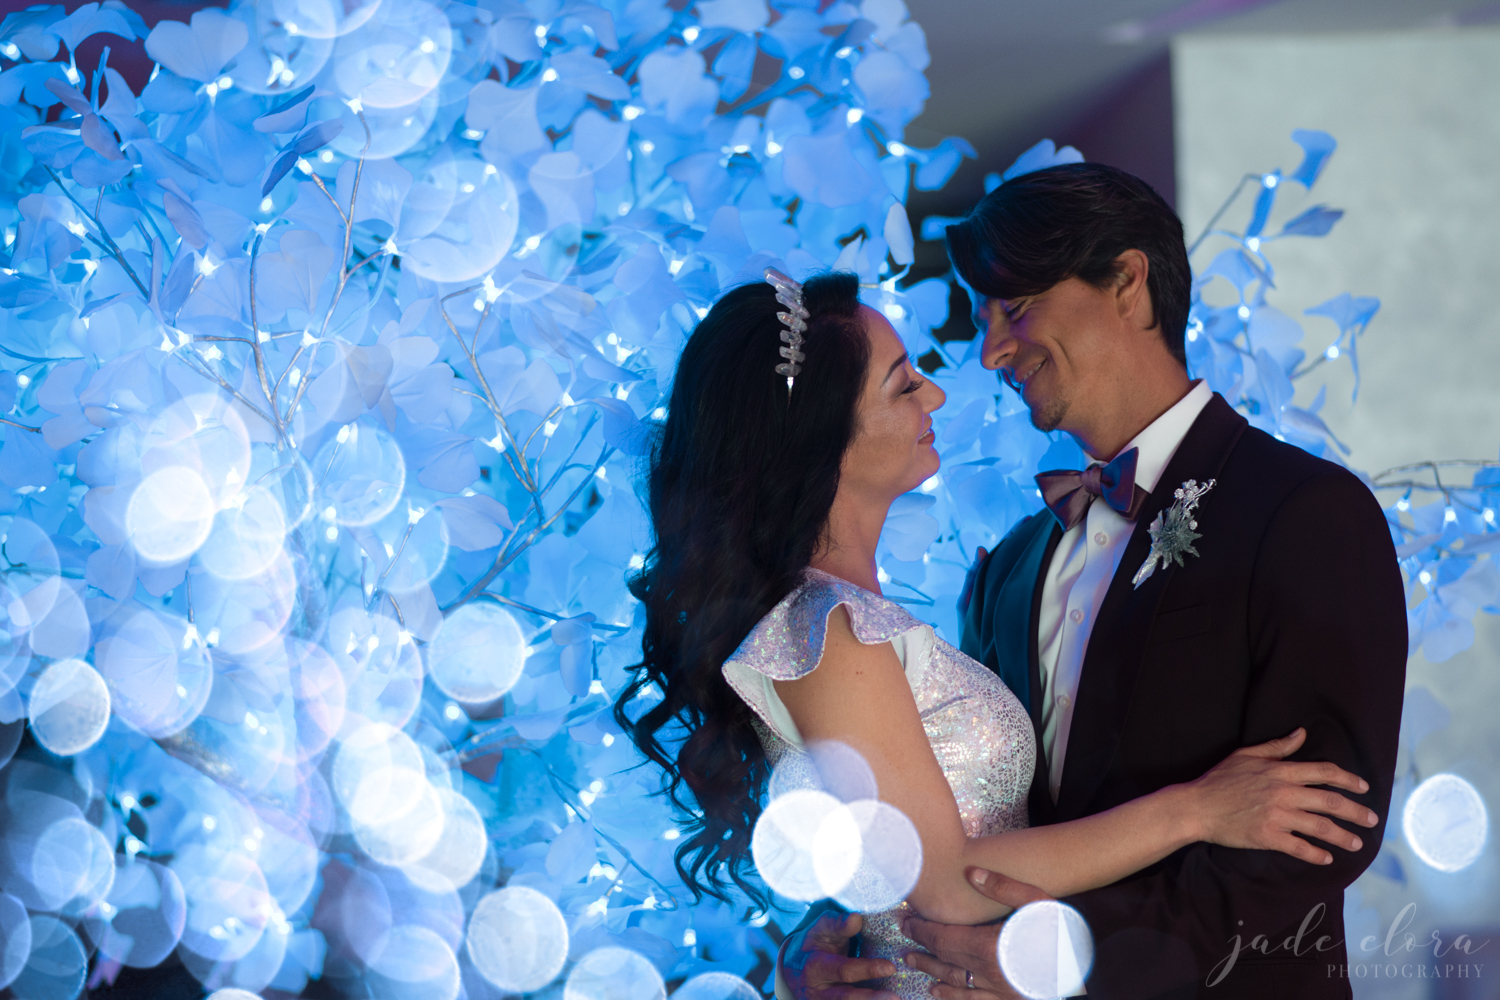 Couple Hugging Surrounded by Blue Lights in Front of Blue Lit Tree